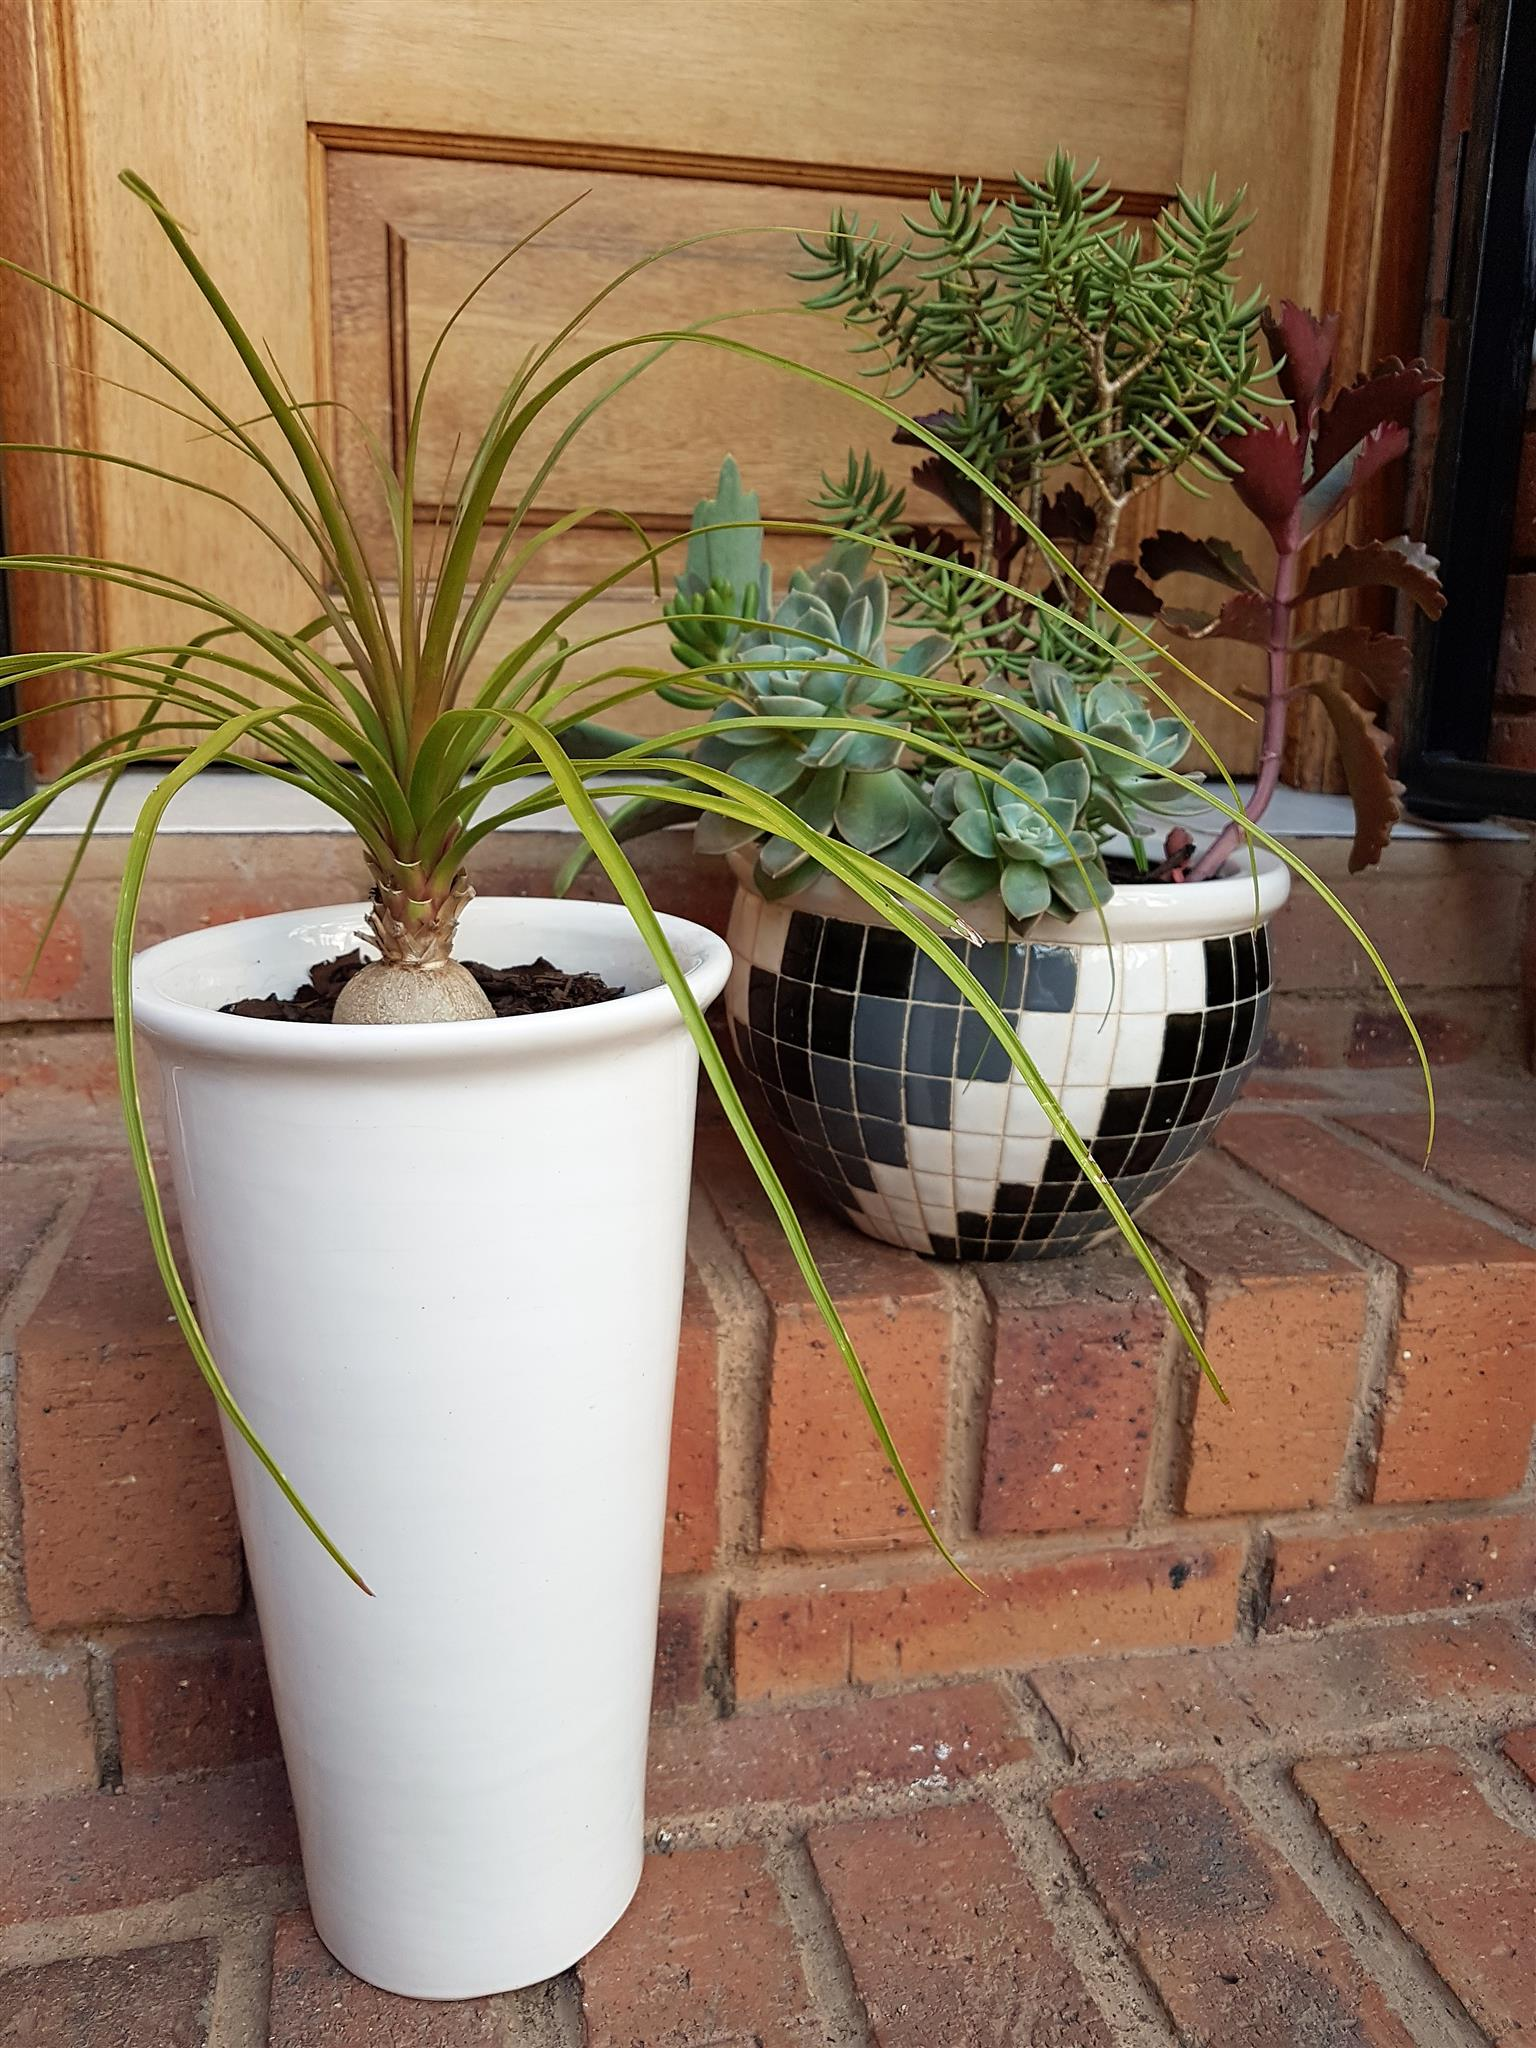 Potted and assorted plants